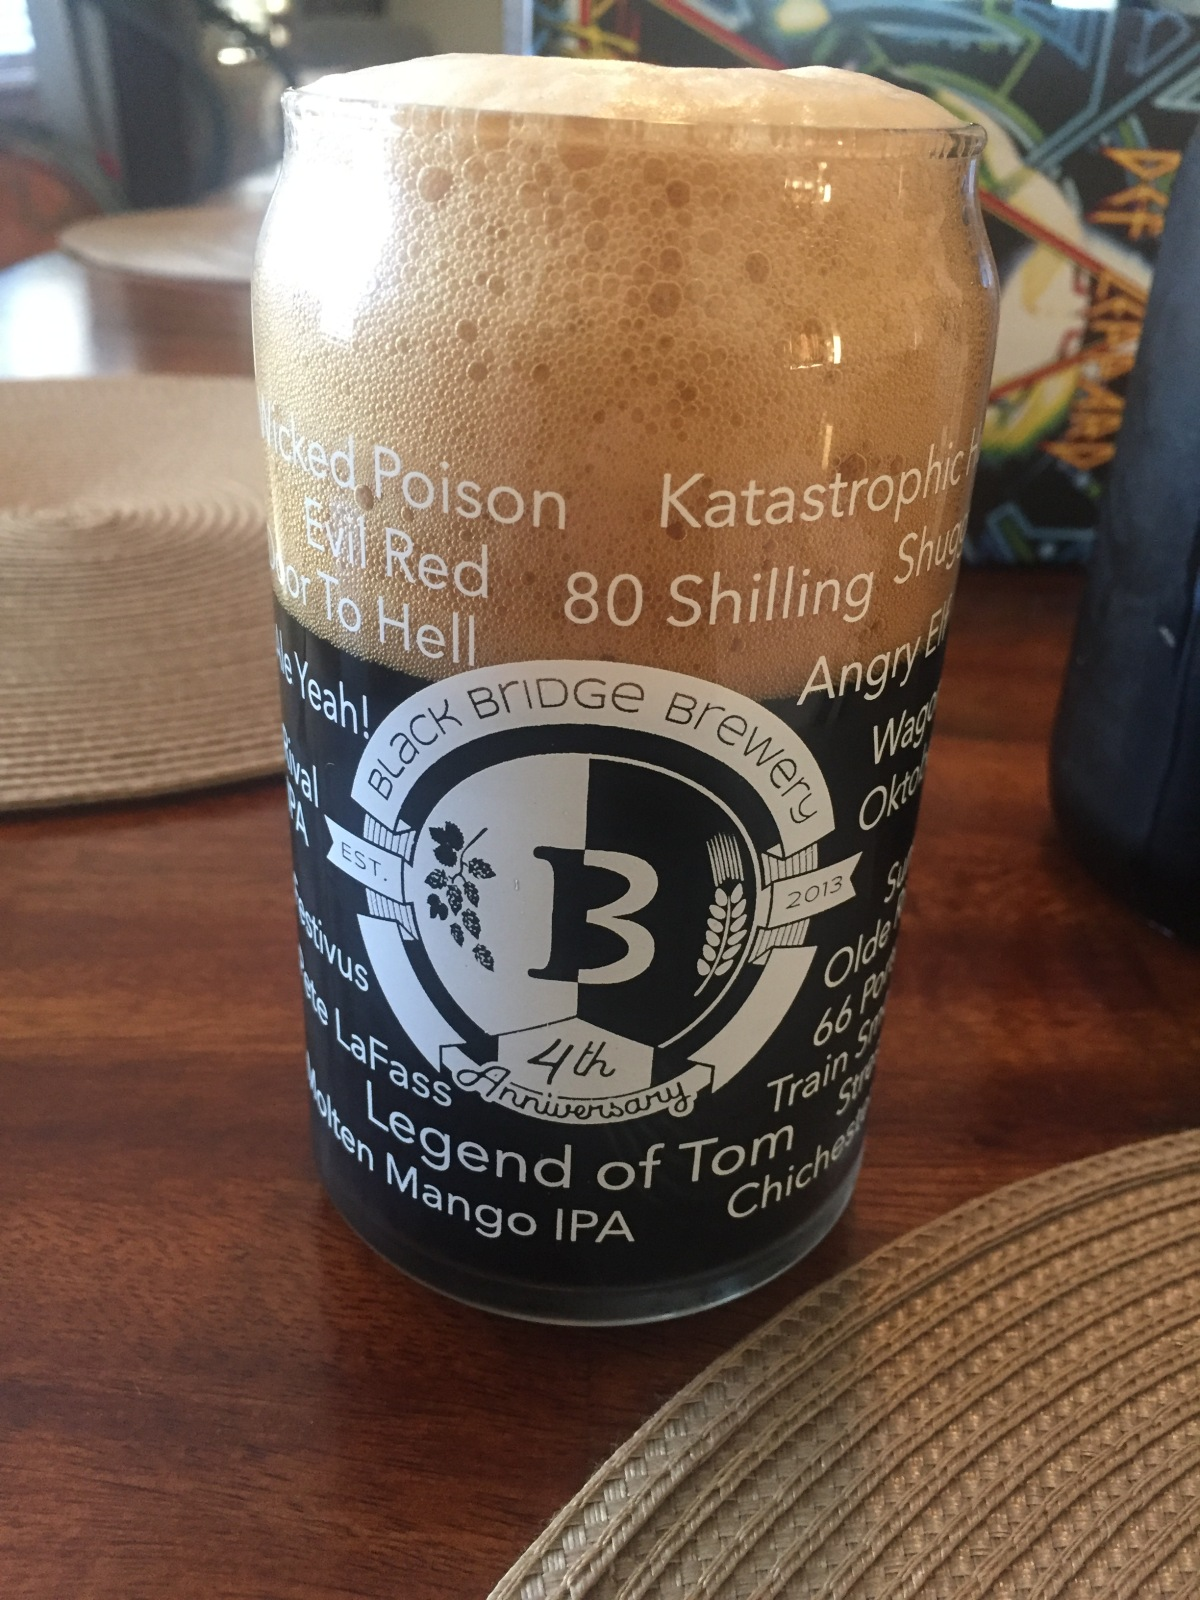 In Review of A Beer: Legend of Tom by Black Bridge Brewery